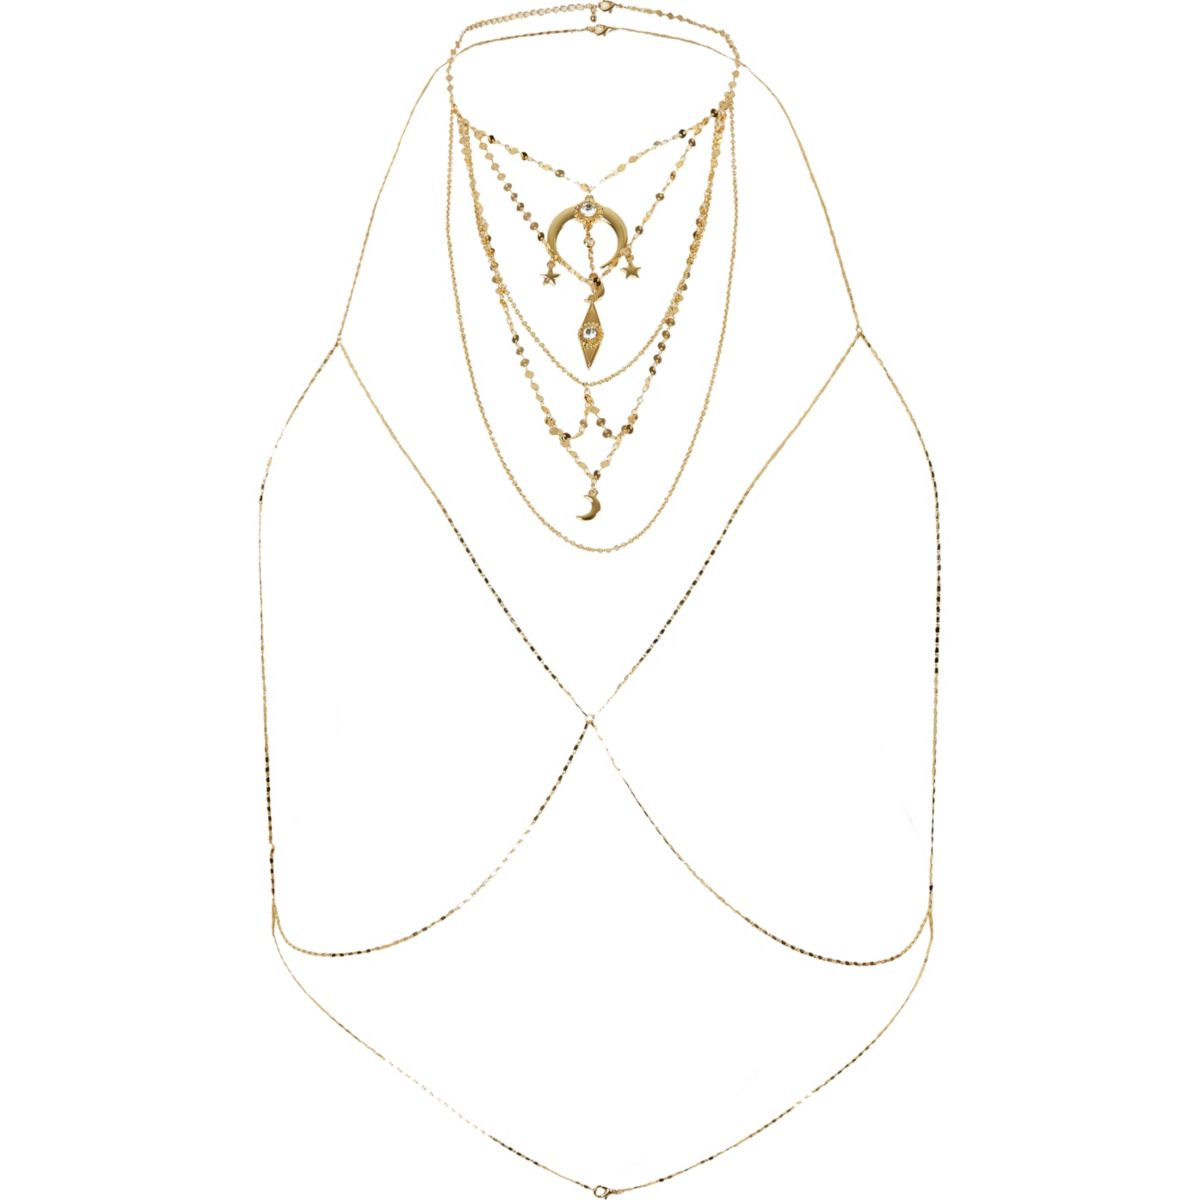 Gold tone charm necklace body chain harness